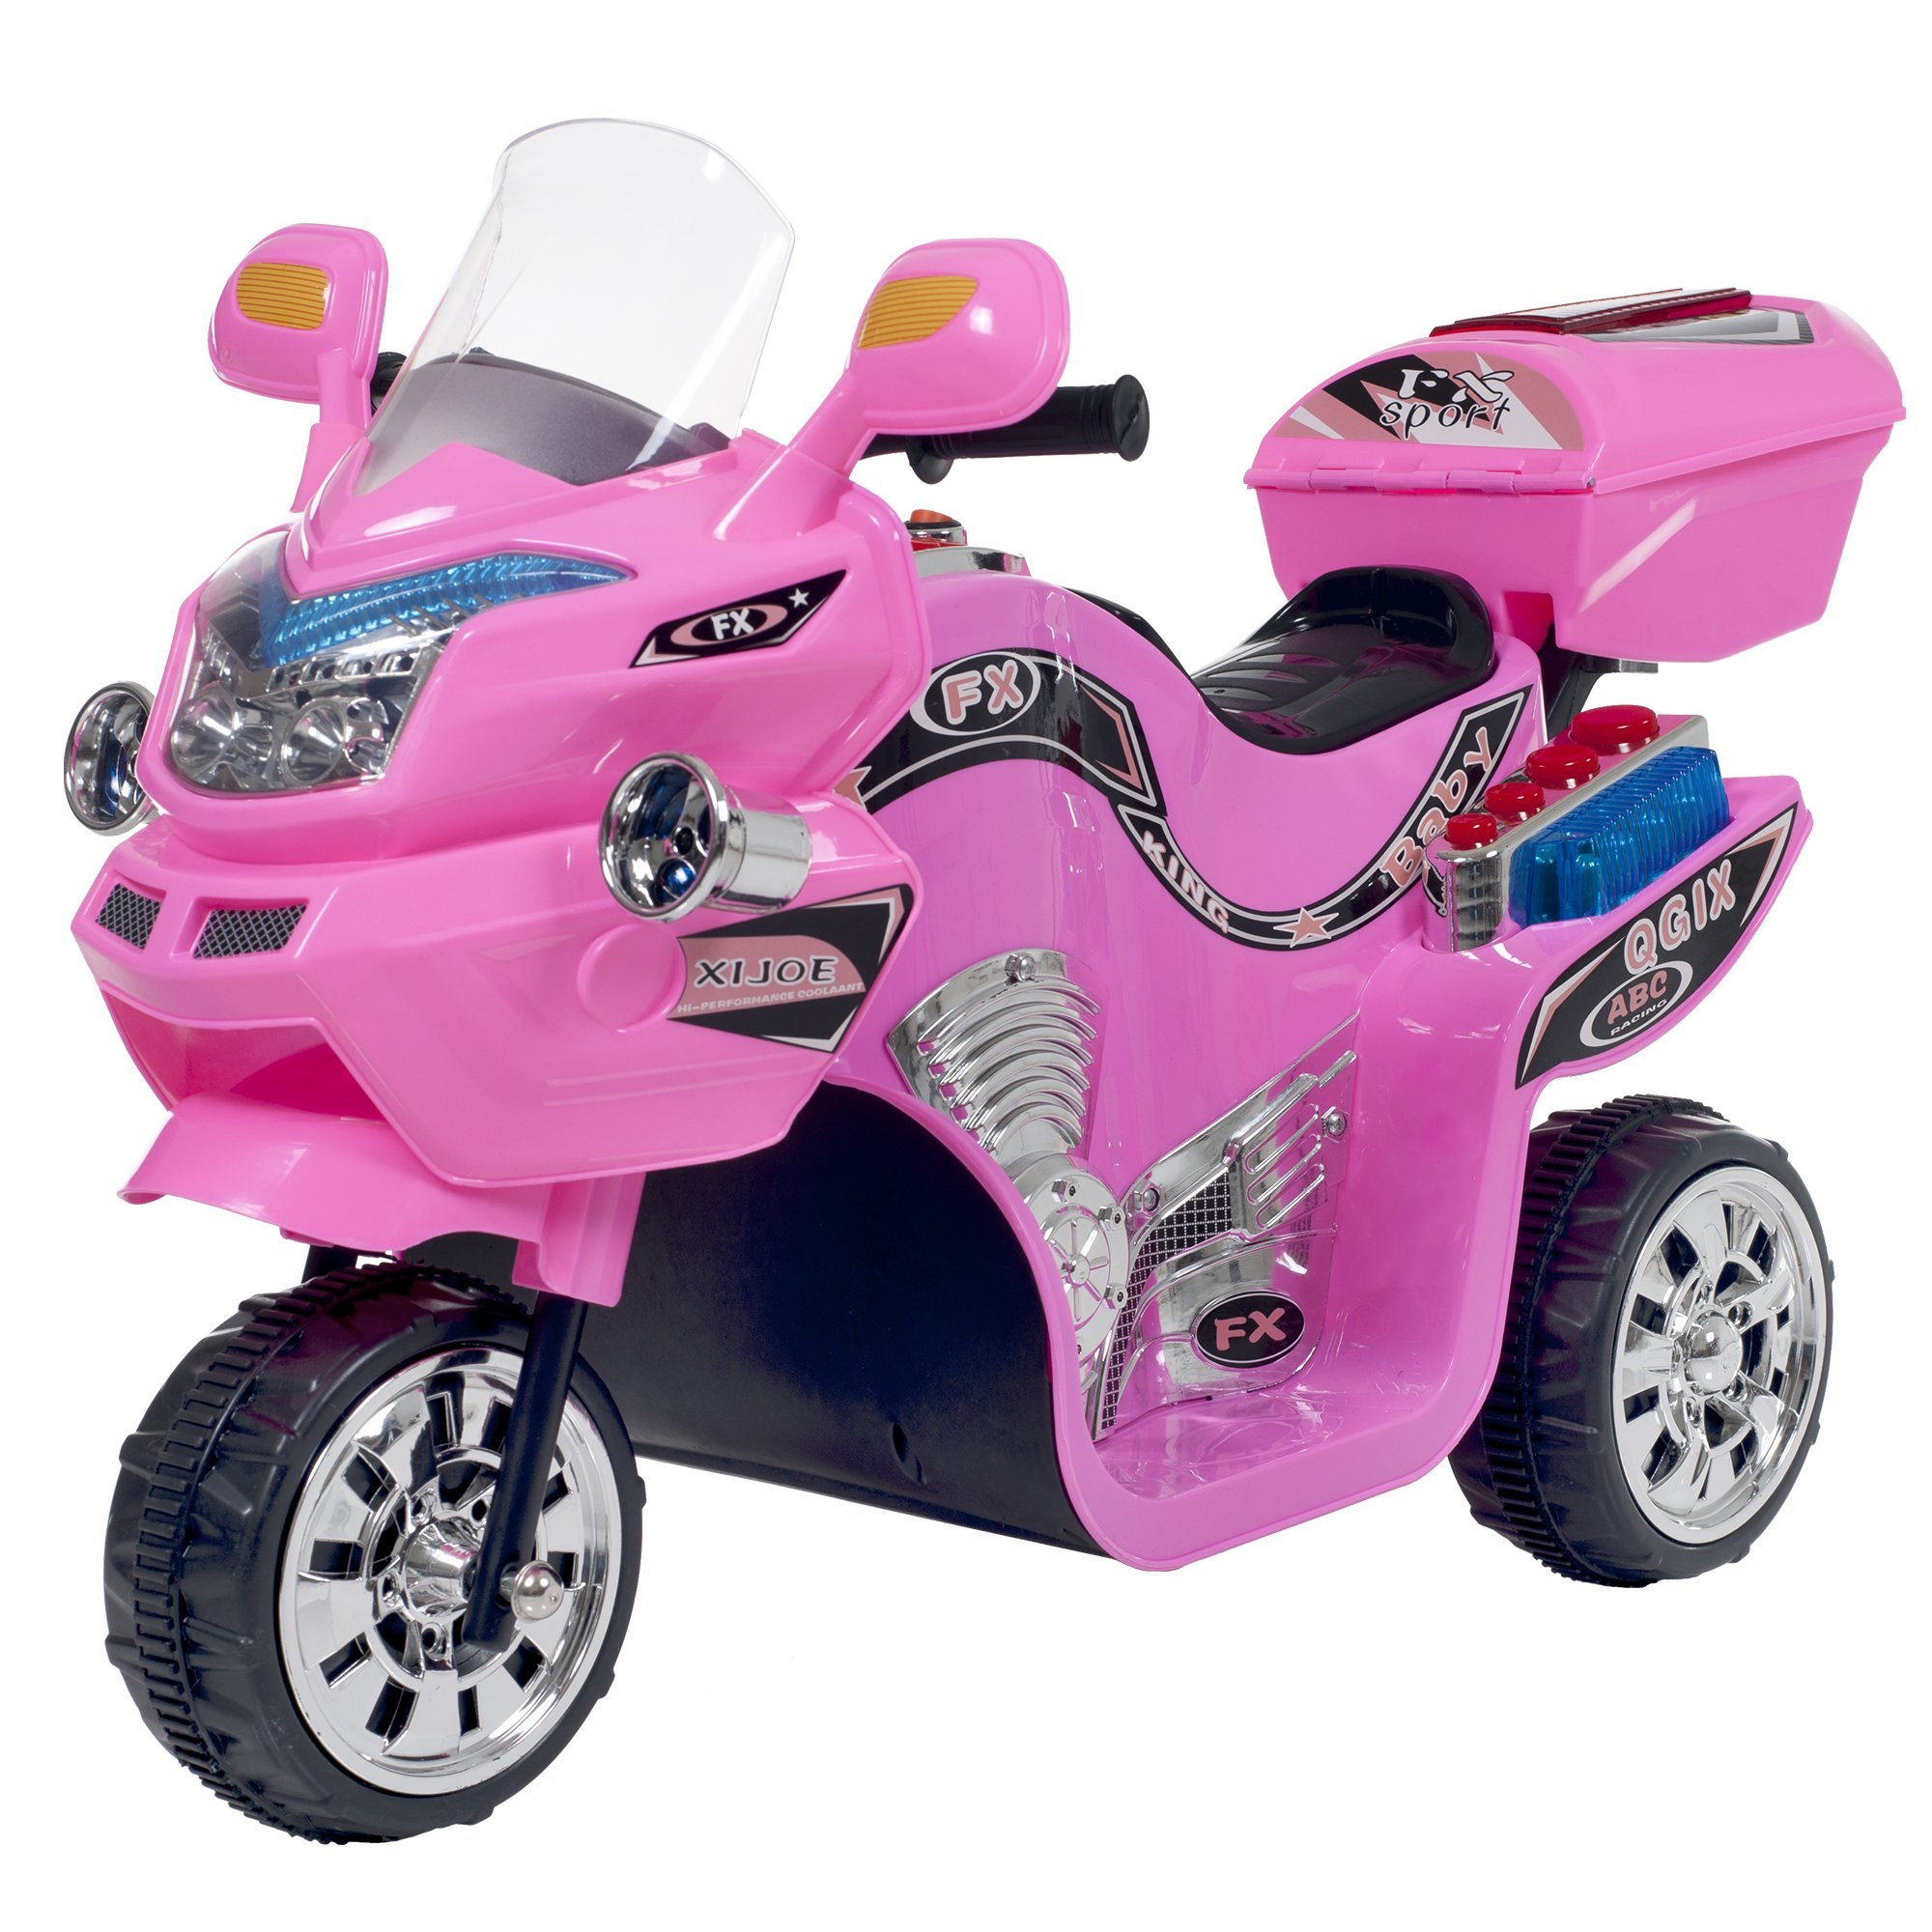 Ride on Toy, 3 Wheel Motorcycle Trike for Kids by Rockin' Rollers  - Battery Powered Ride on Toys for Boys and Girls, 2 - 5 Year Old - Pink FX by Lil' Rider